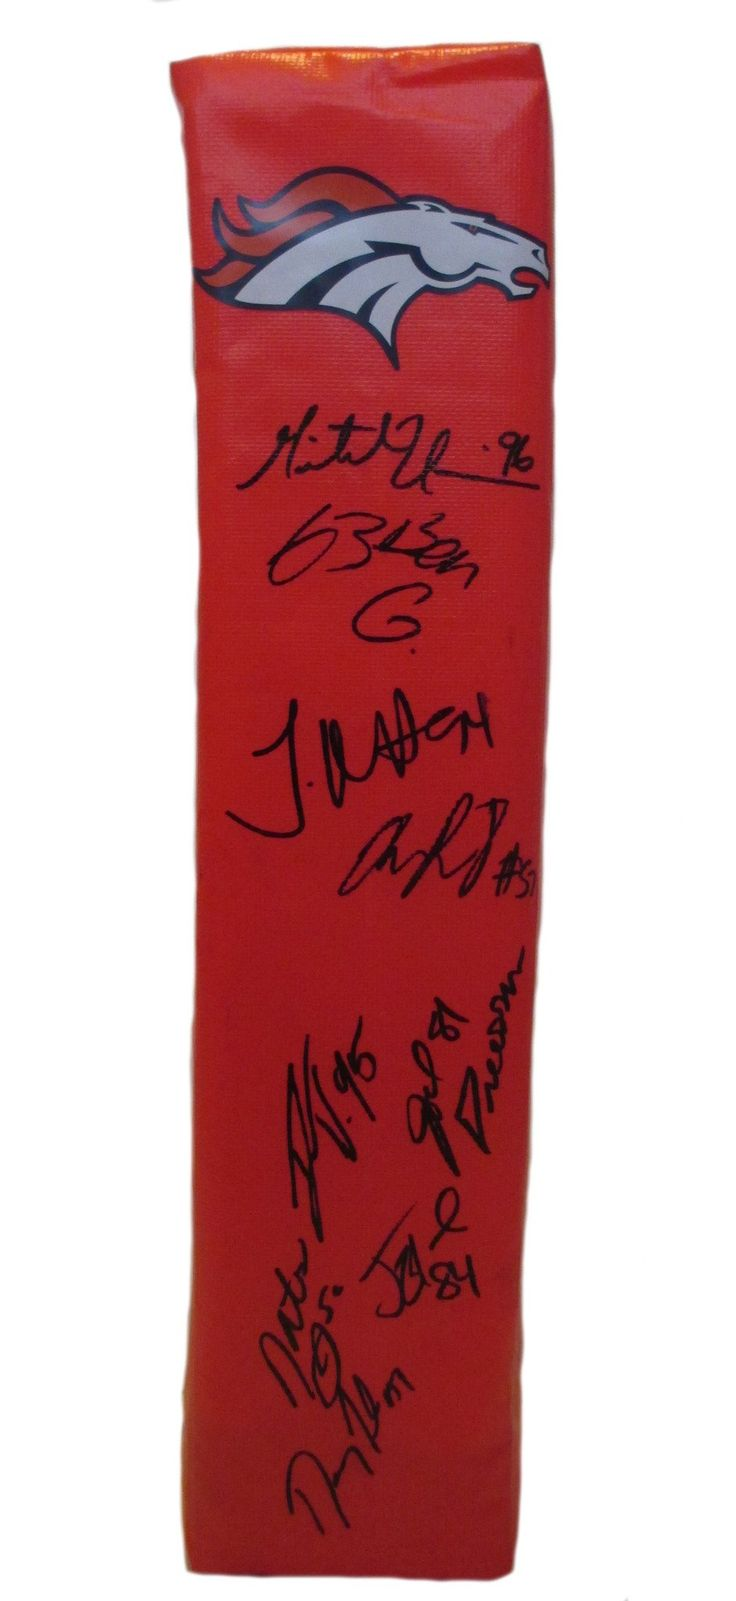 2013 Denver Broncos Team Autographed Full Size Football End Zone Touchdown Pylon, Proof. This is a brand-new custom 2013 Denver Broncos team signed full sizefootball end zone pylon. This pylon measures 4inches (Width) X 4inches (Length) X 18inches (Height). The following Broncos signed the pylonin black sharpie: Head Coach John Fox, CJ Anderson, Montee Ball, Danny Trevathan, Matt Prater, Chris Clark, Tony Carter, Mike Adams, David Bruton, Duke Ihenacho, Wesley Woodyard, Mitch Unrein…